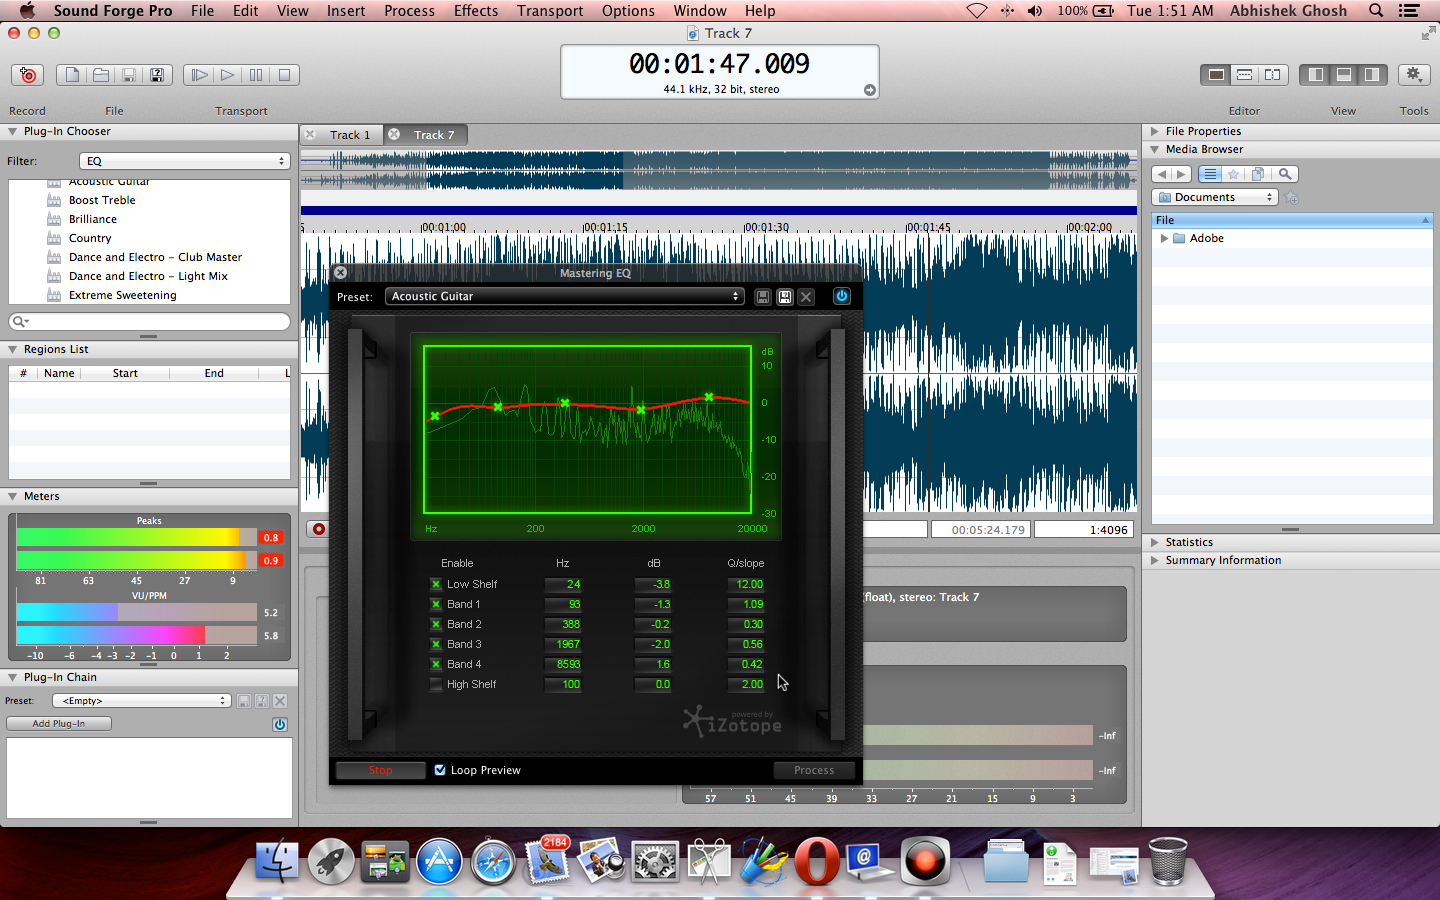 SOUND FORGE Pro Mac 3 Overview